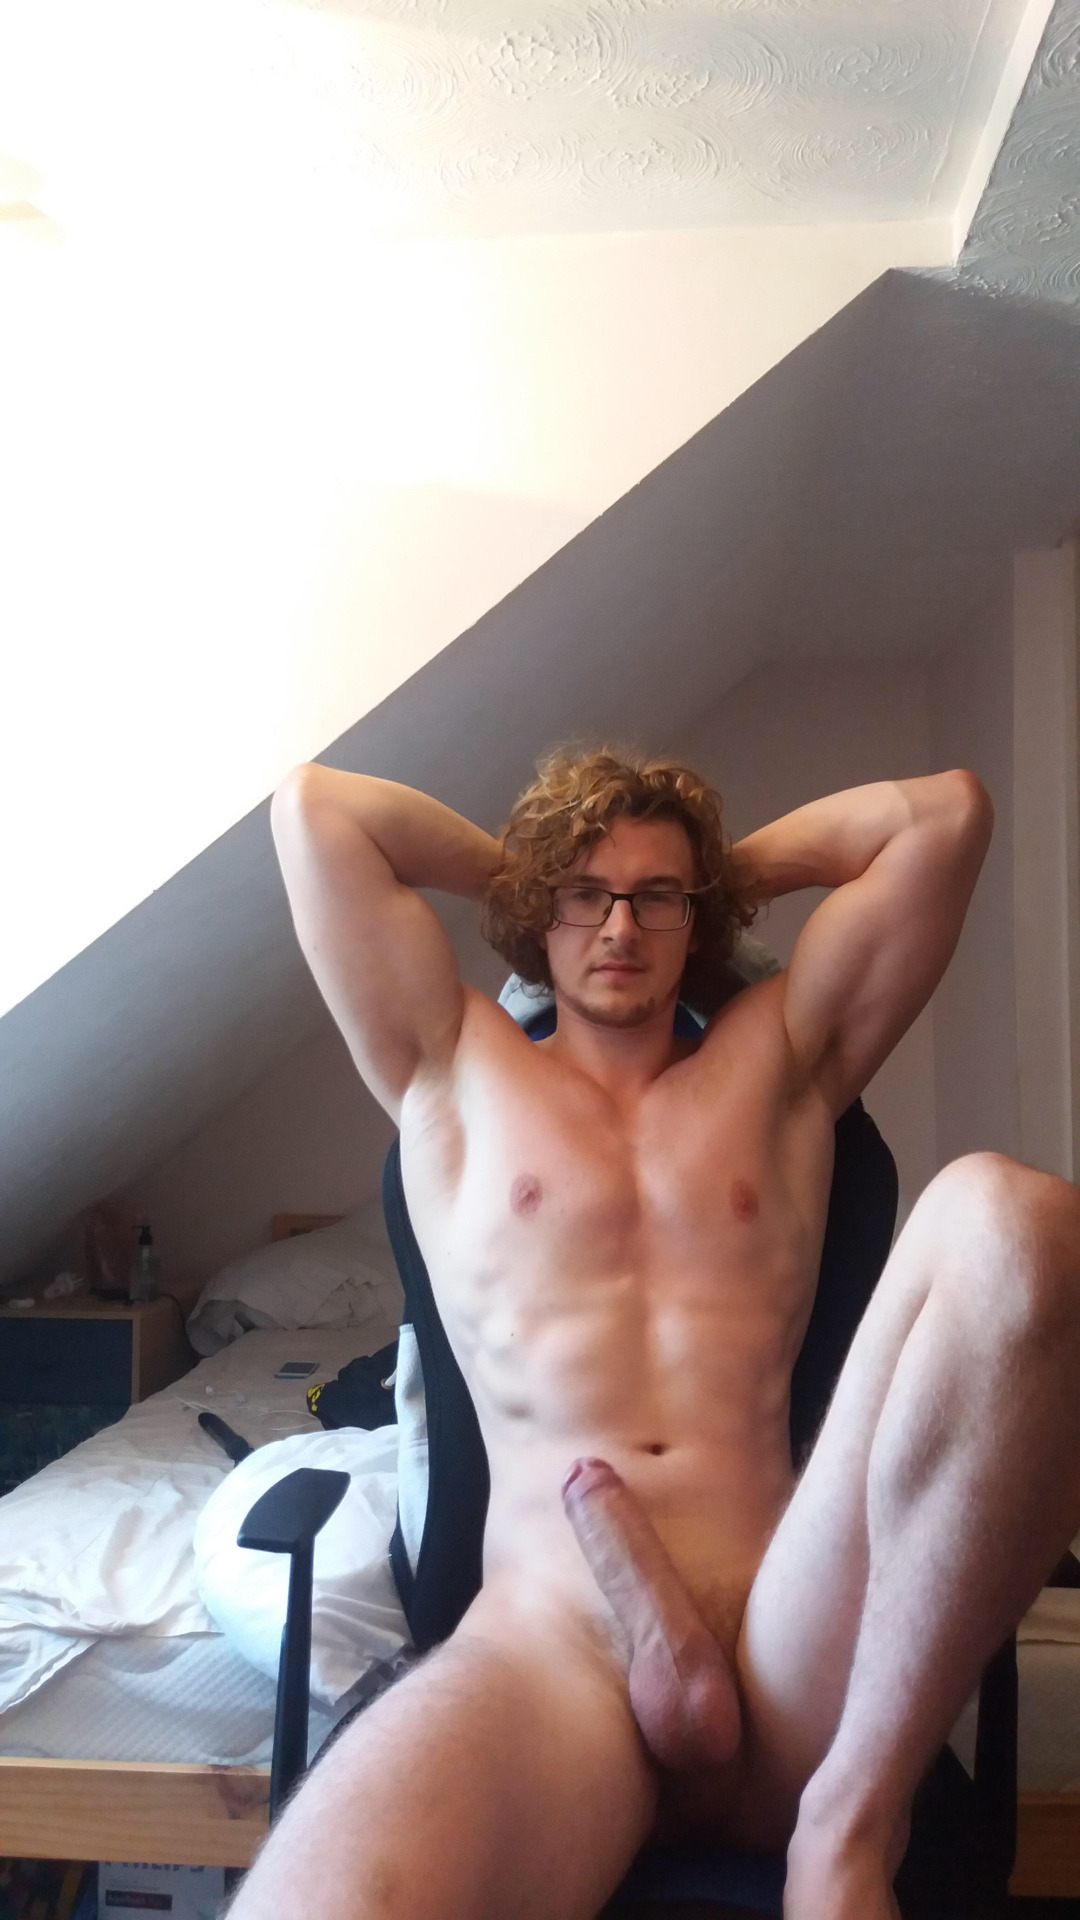 blond ttbm beau mec en erection